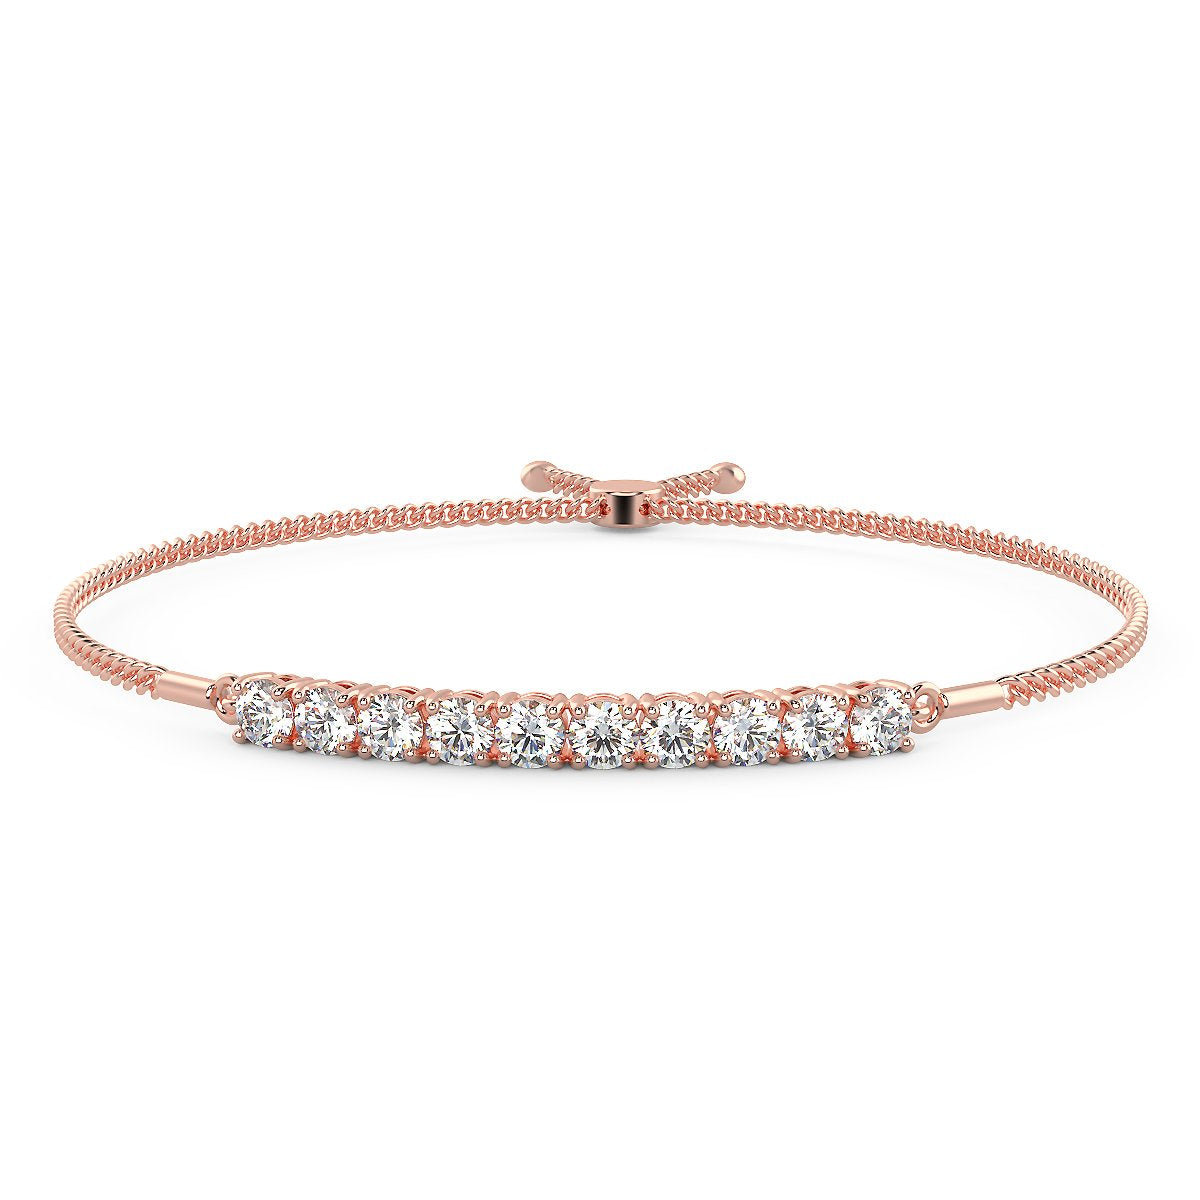 River of Light Bracelet in 14K Rose Gold (2.00 Ct. Tw.)